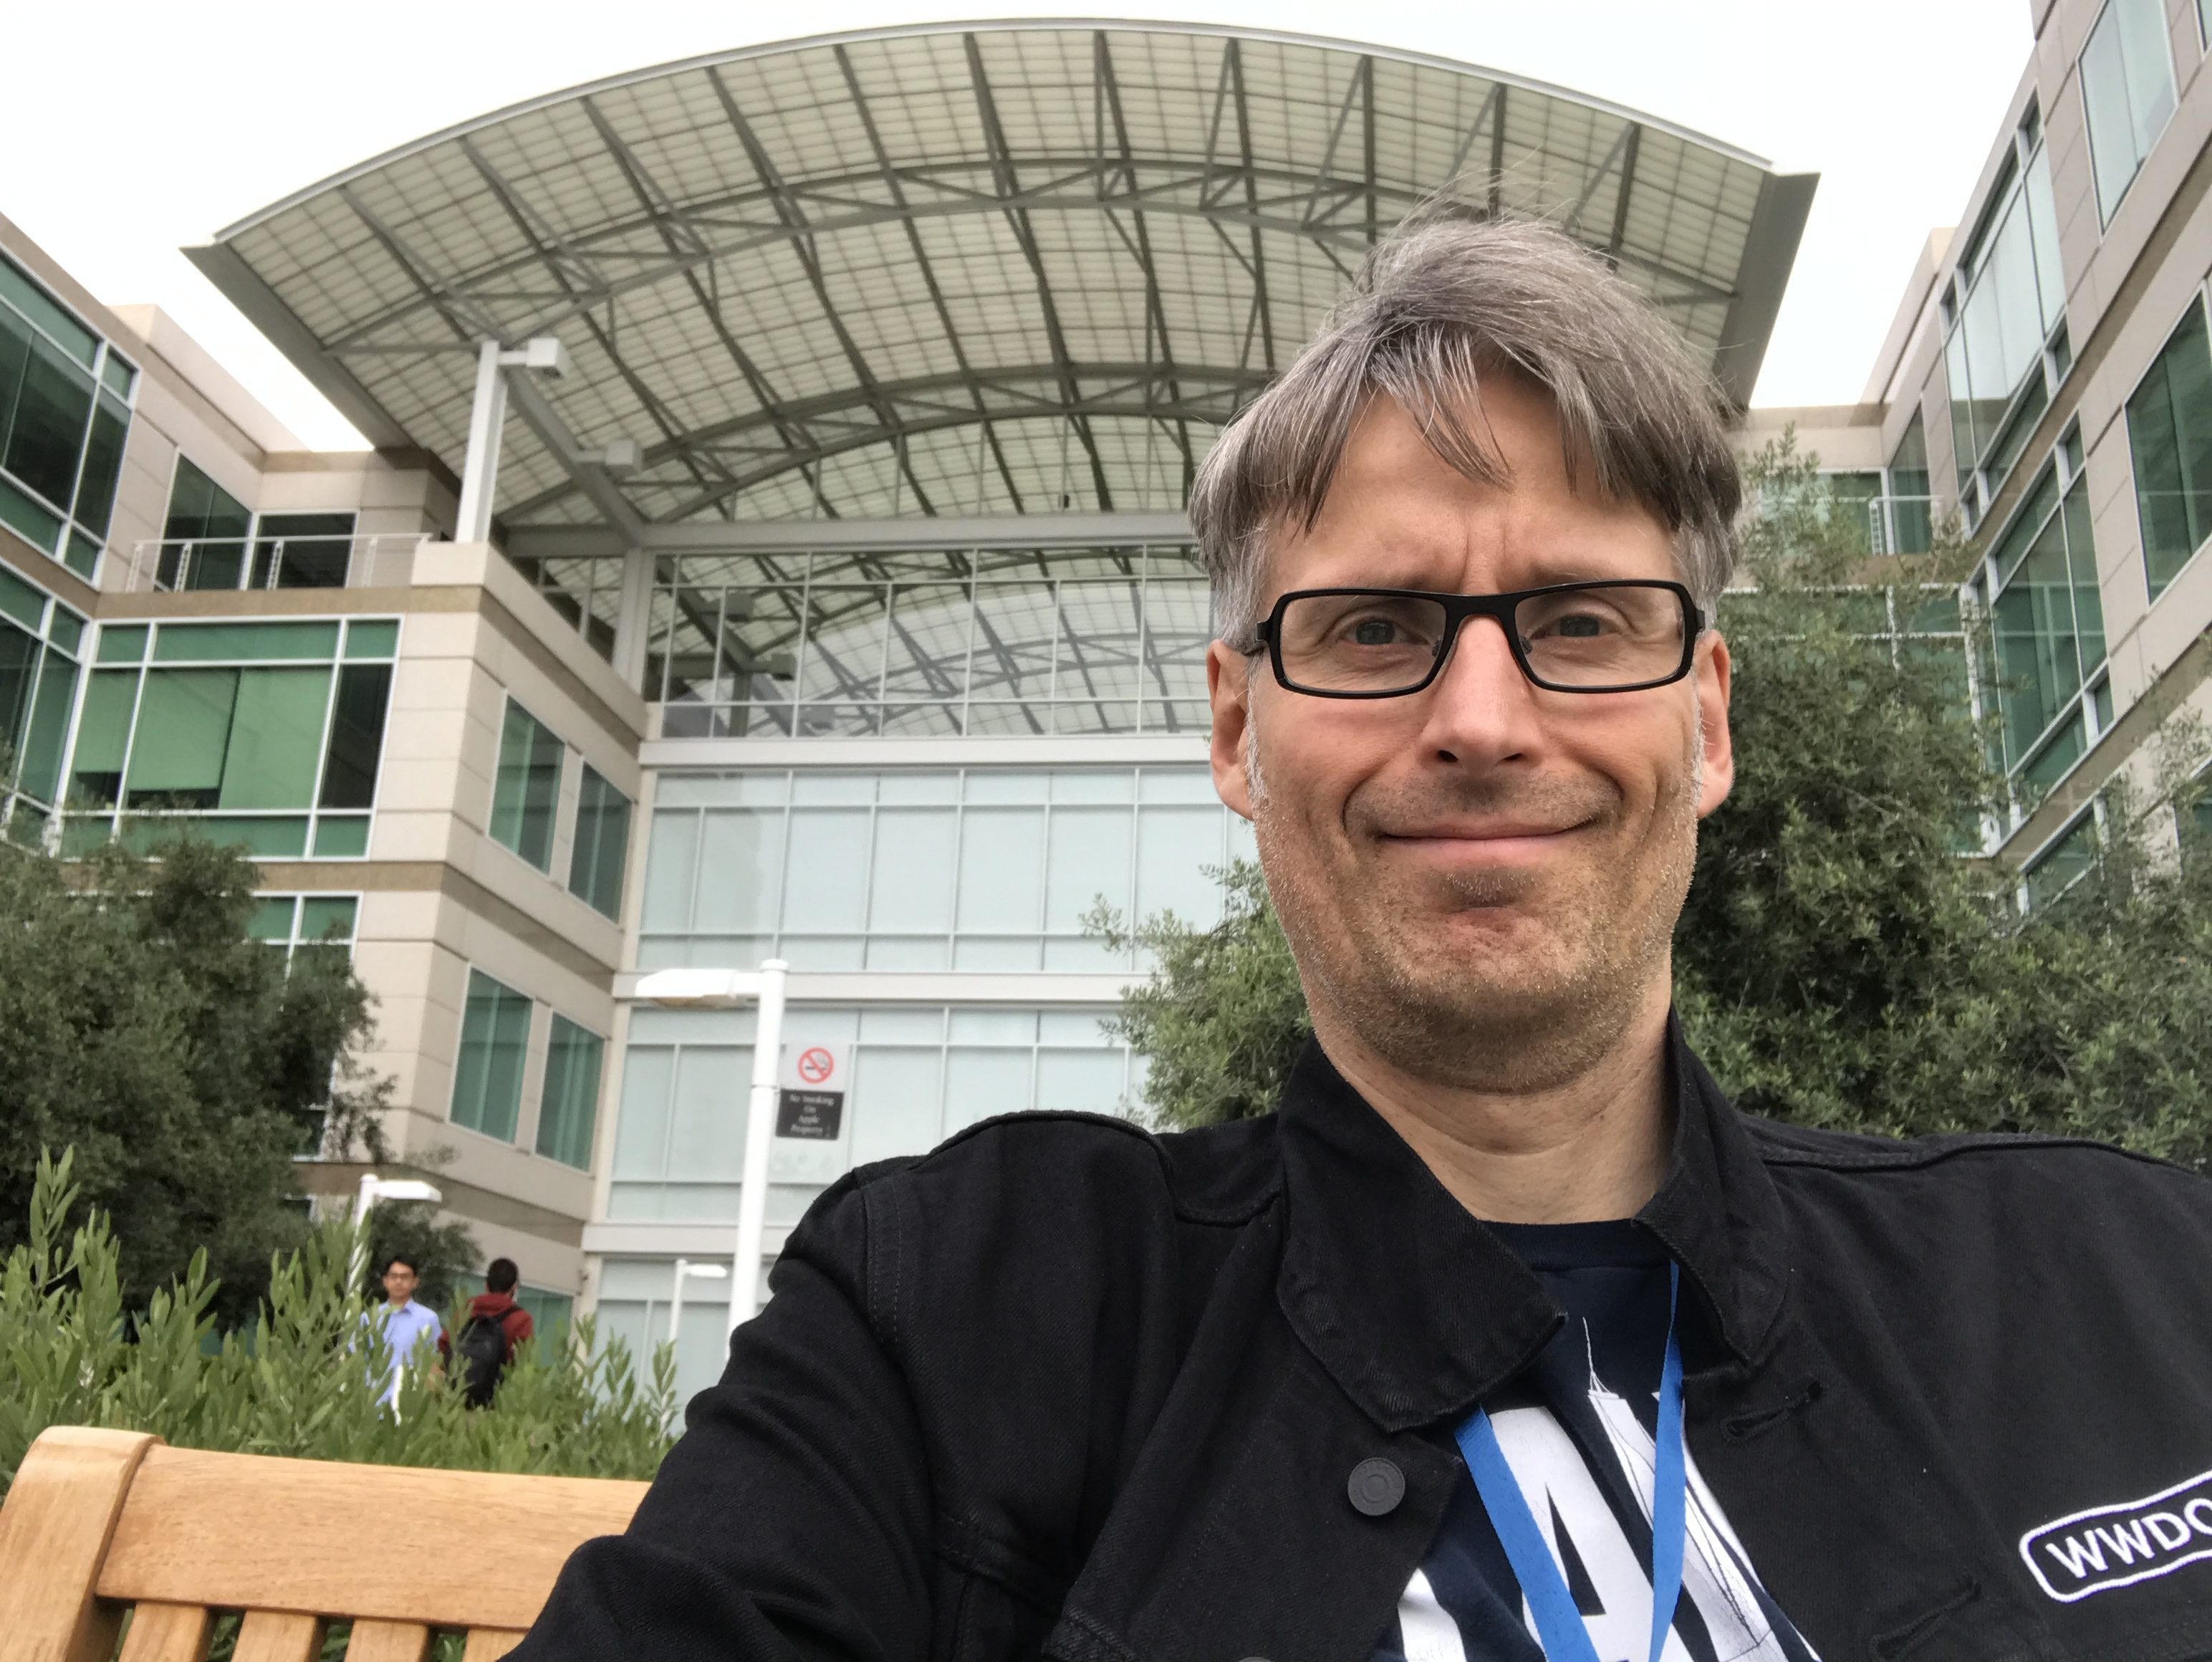 Michi der alte Fanboy vor dem Apple Campus in Cupertino.